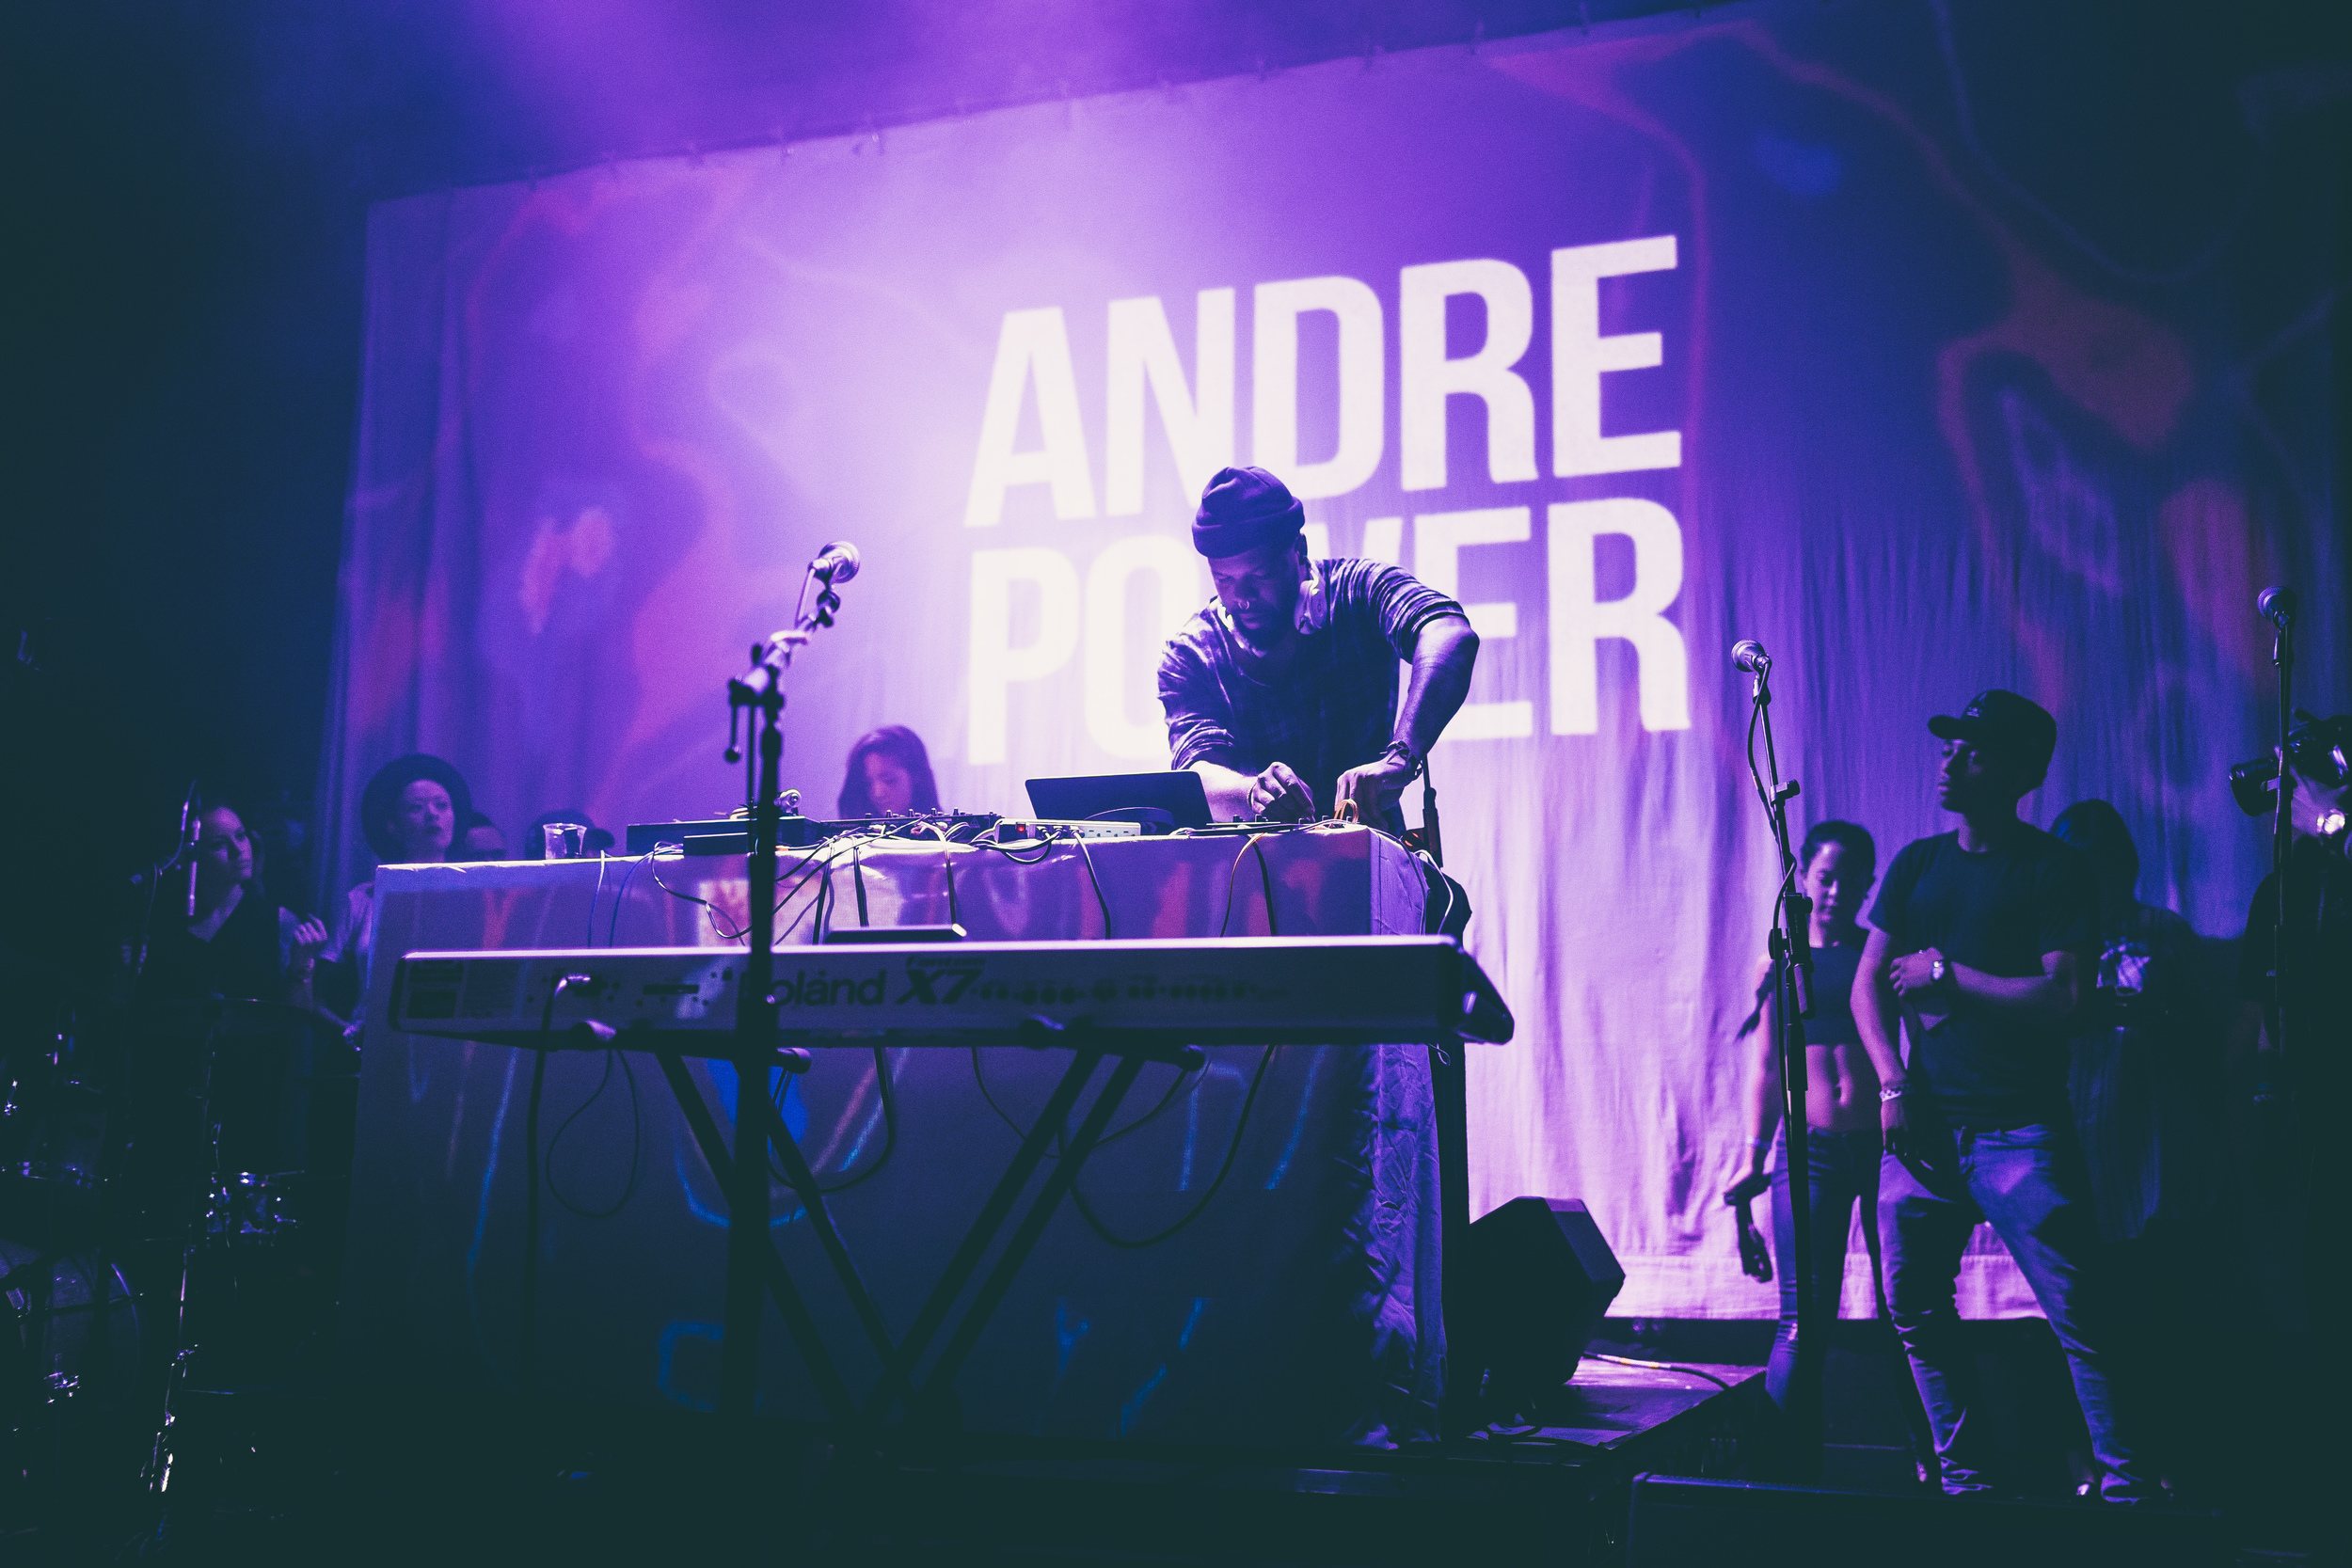 Andre Power